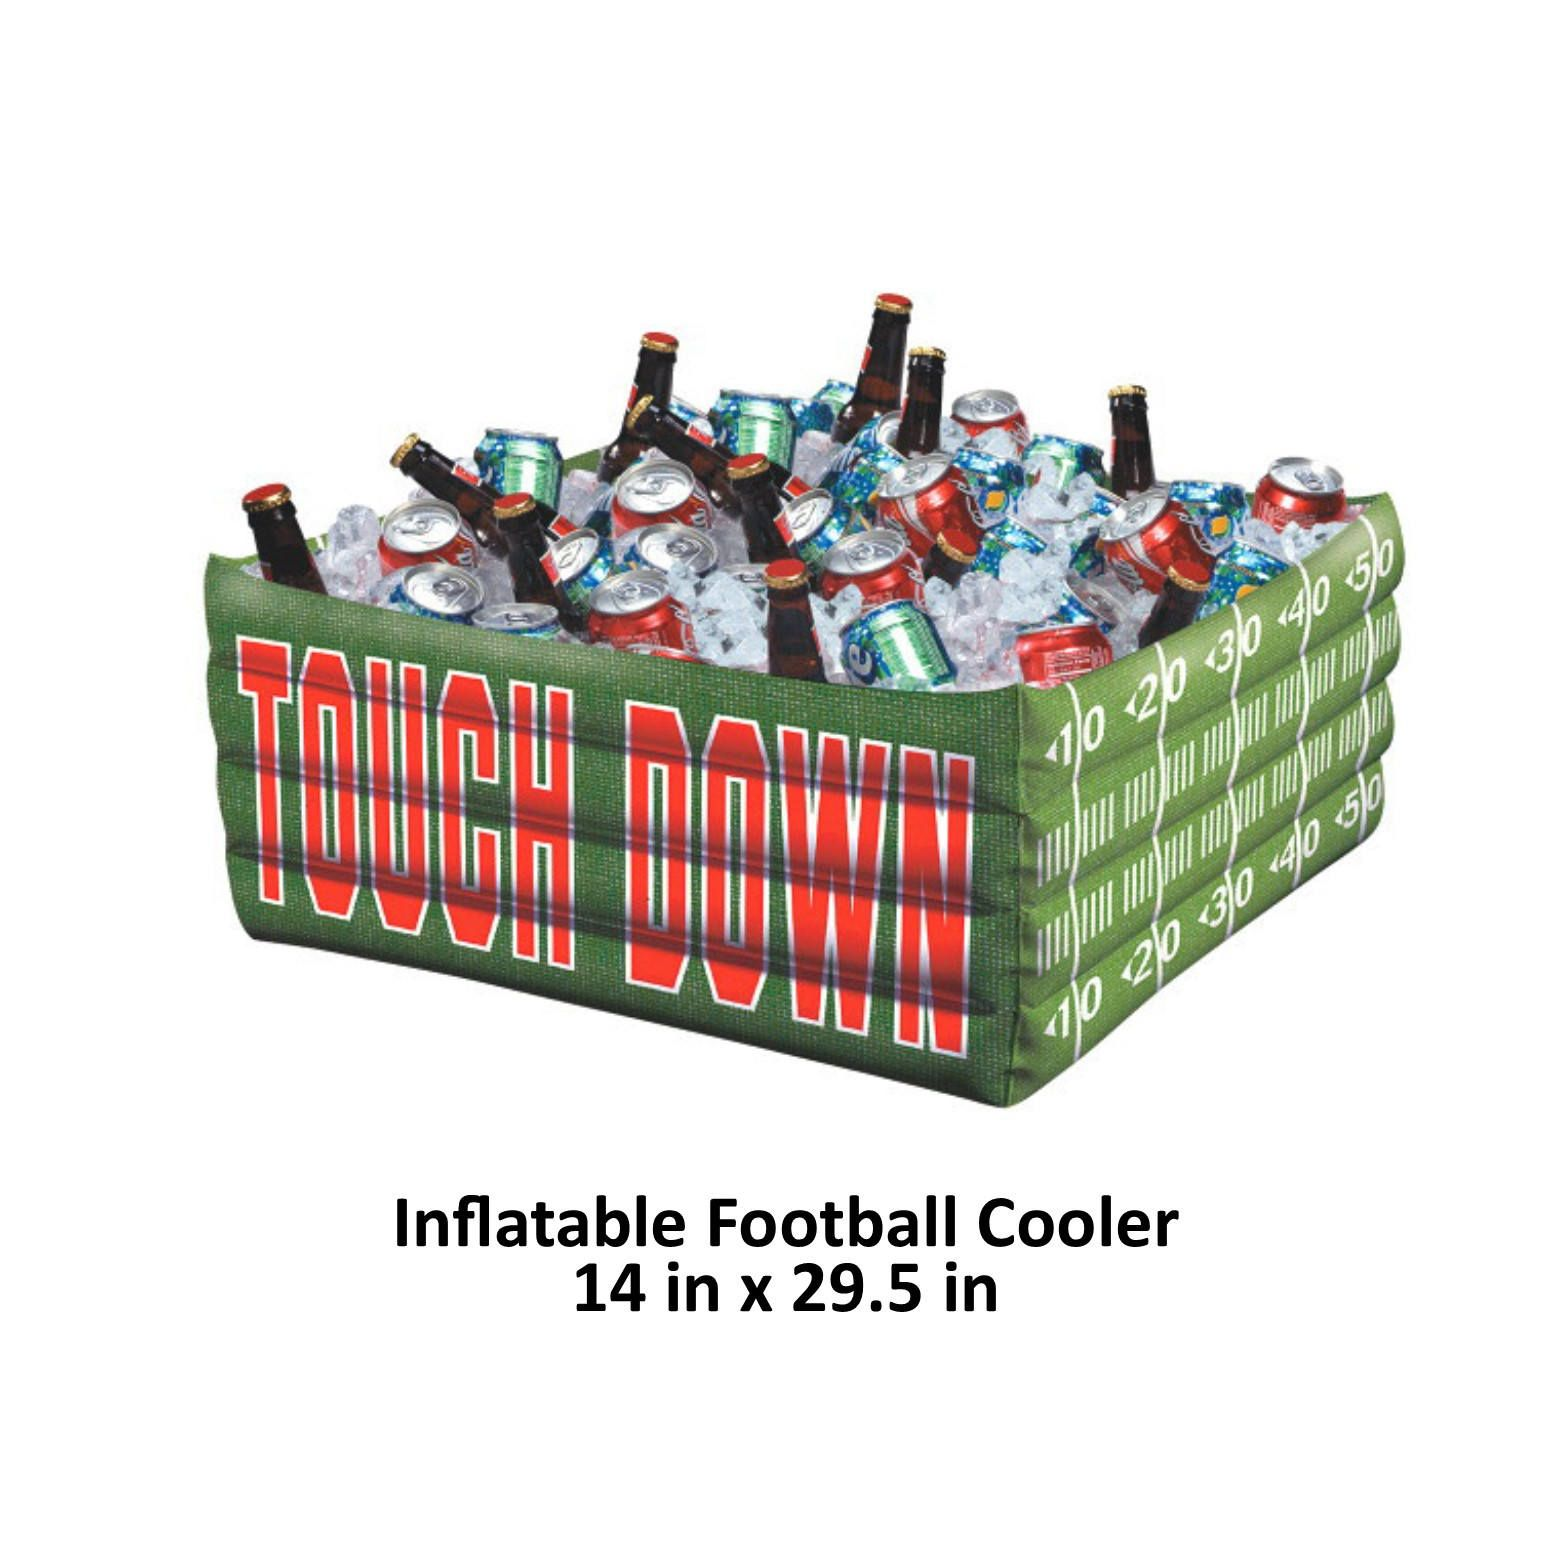 Superbowl party inflatable buffet cooler super bowl 52 football superbowl party inflatable buffet cooler super bowl 52 football theme blow up drink junglespirit Images